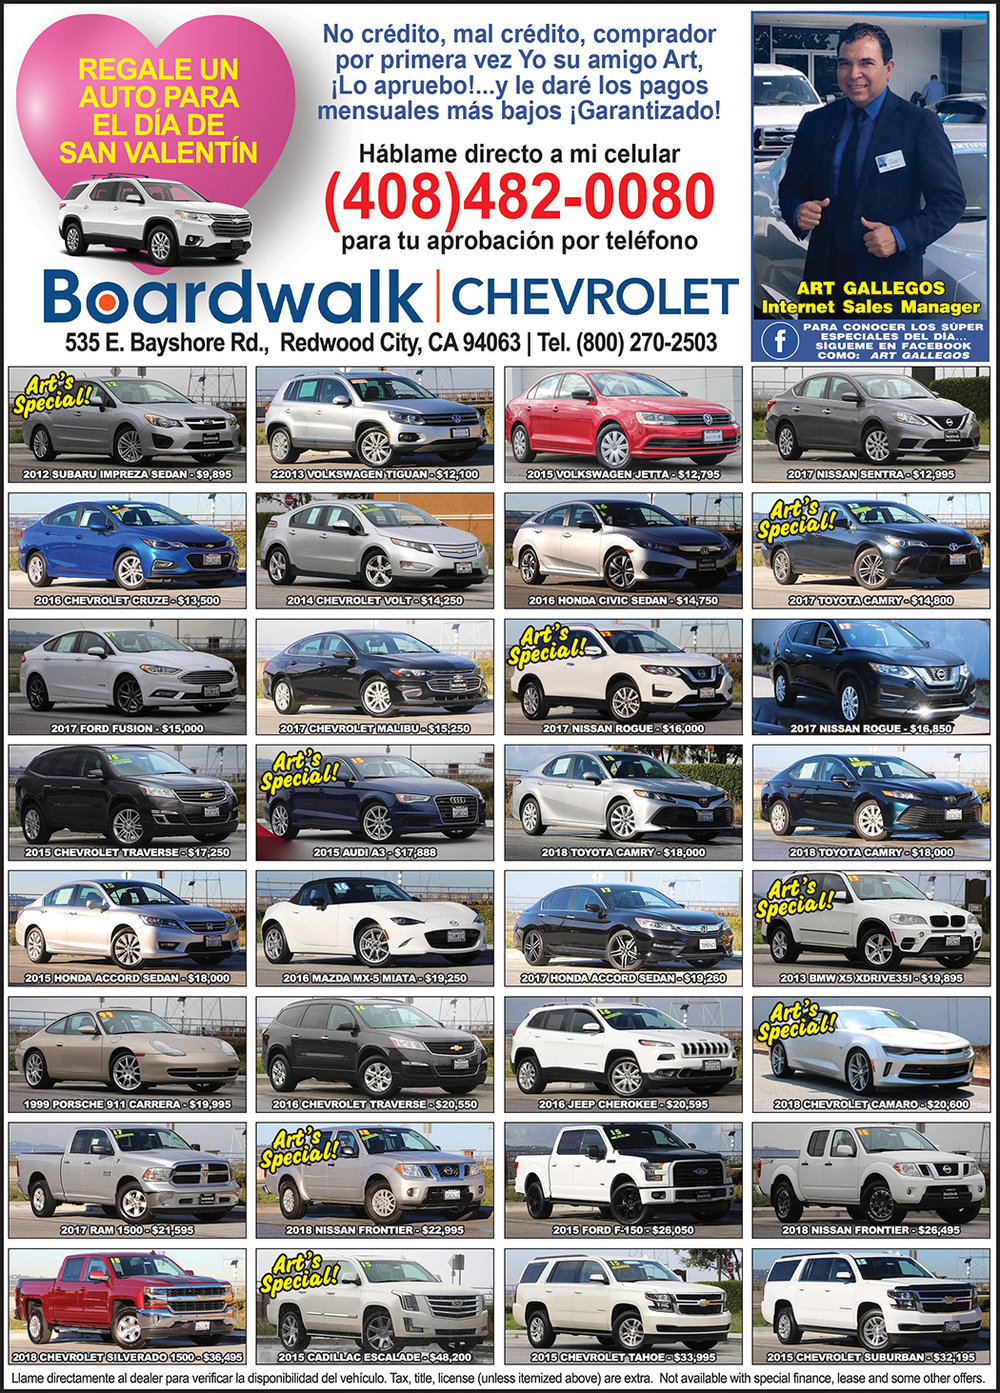 Boardwalk Chevrolet - Art Gallegos 1 PAG FEBRERO 2019.jpg